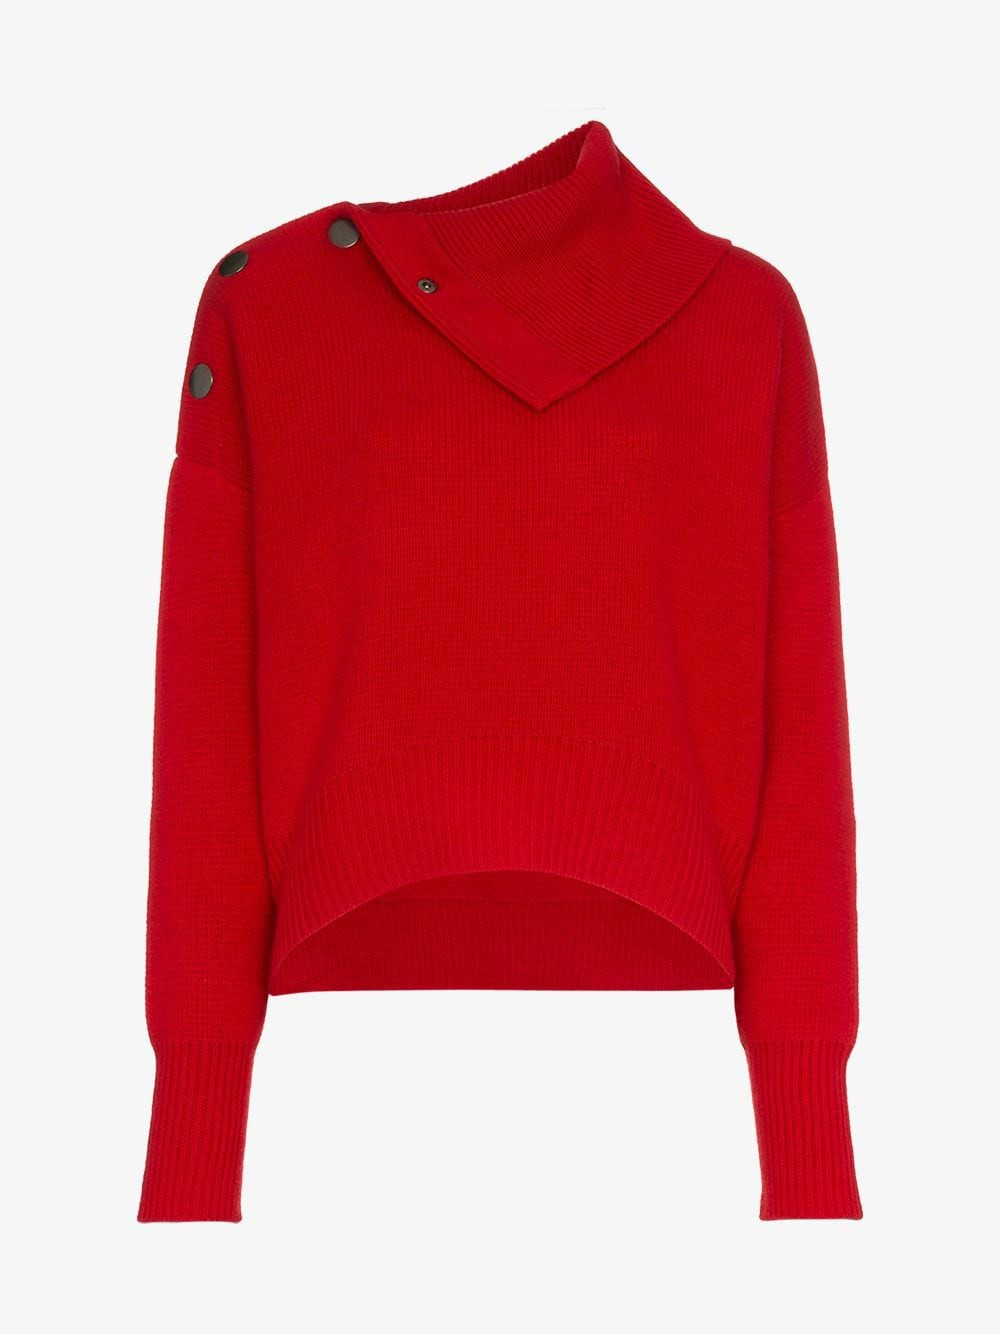 Le Kasha etretate button detail cashmere roll-neck jumper in red